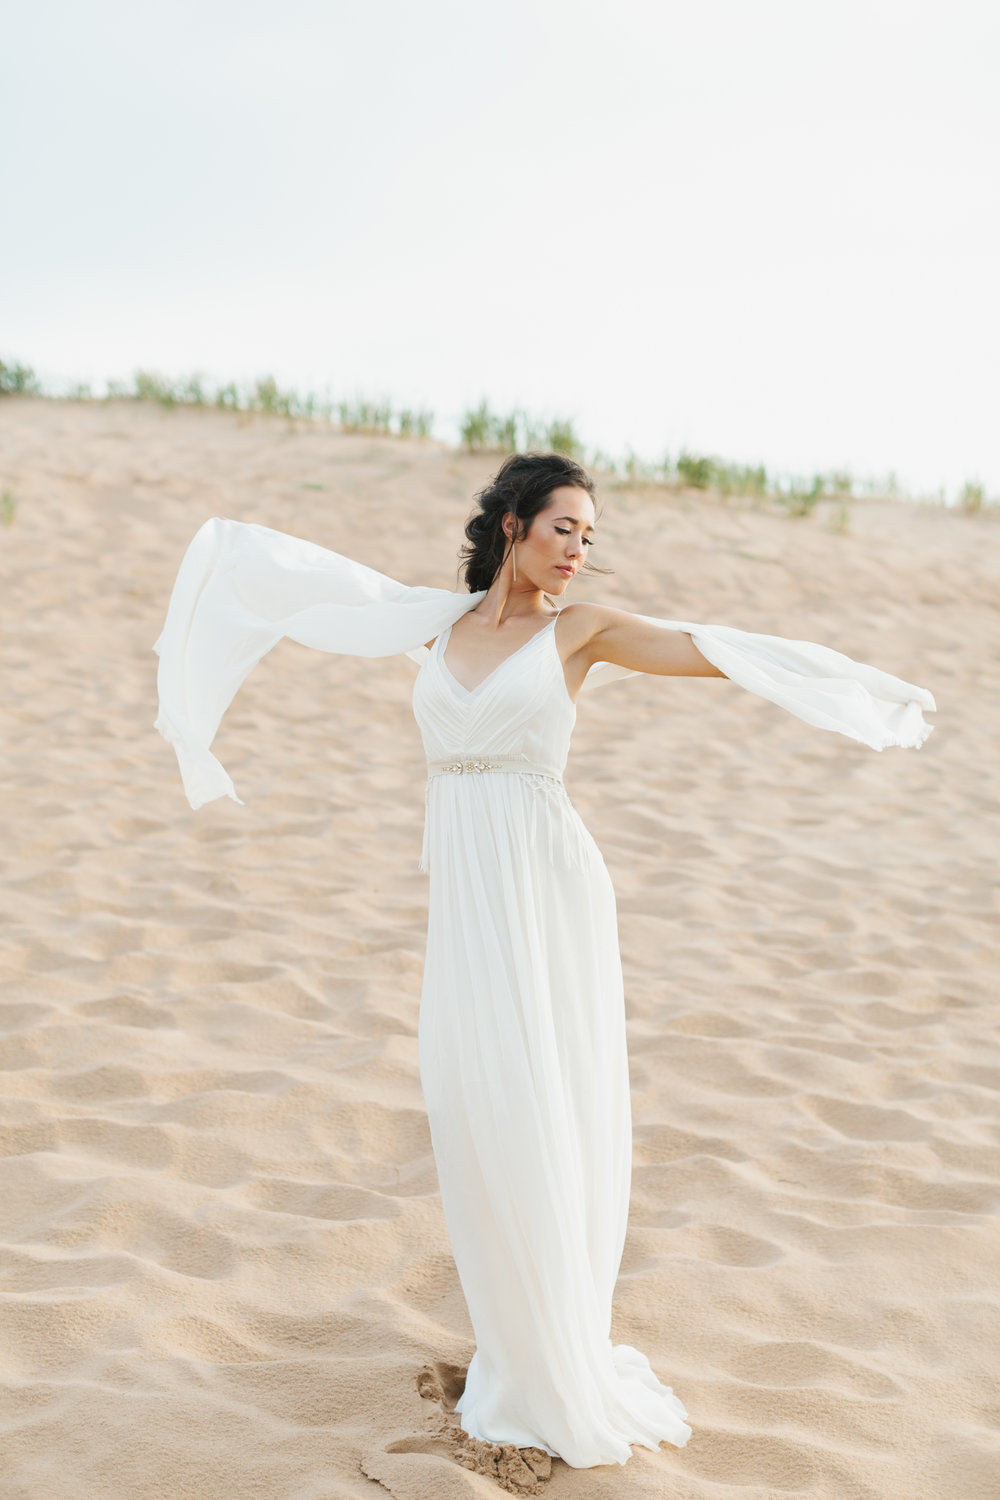 Sleeping Bear Dunes Bridal Portraits Wedding Photographer Mae Stier-048.jpg